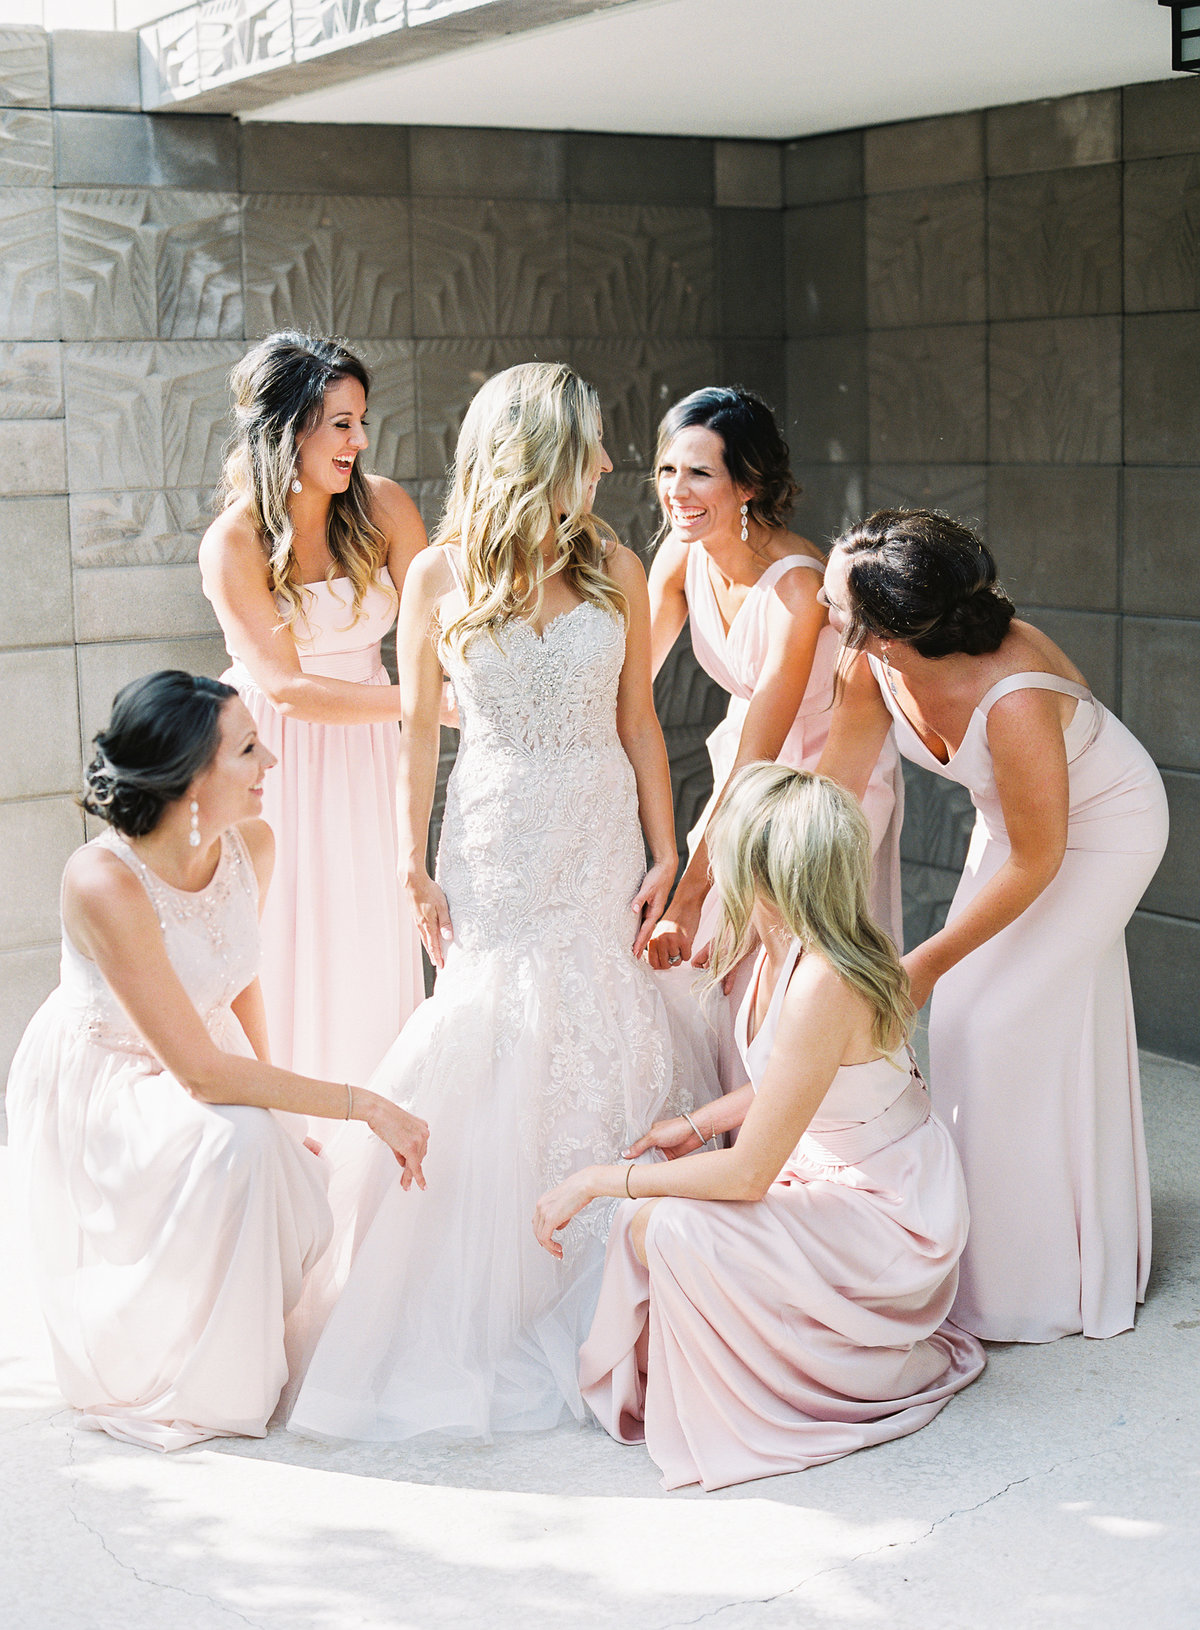 Arizona Biltmore Wedding - Mary Claire Photography-26